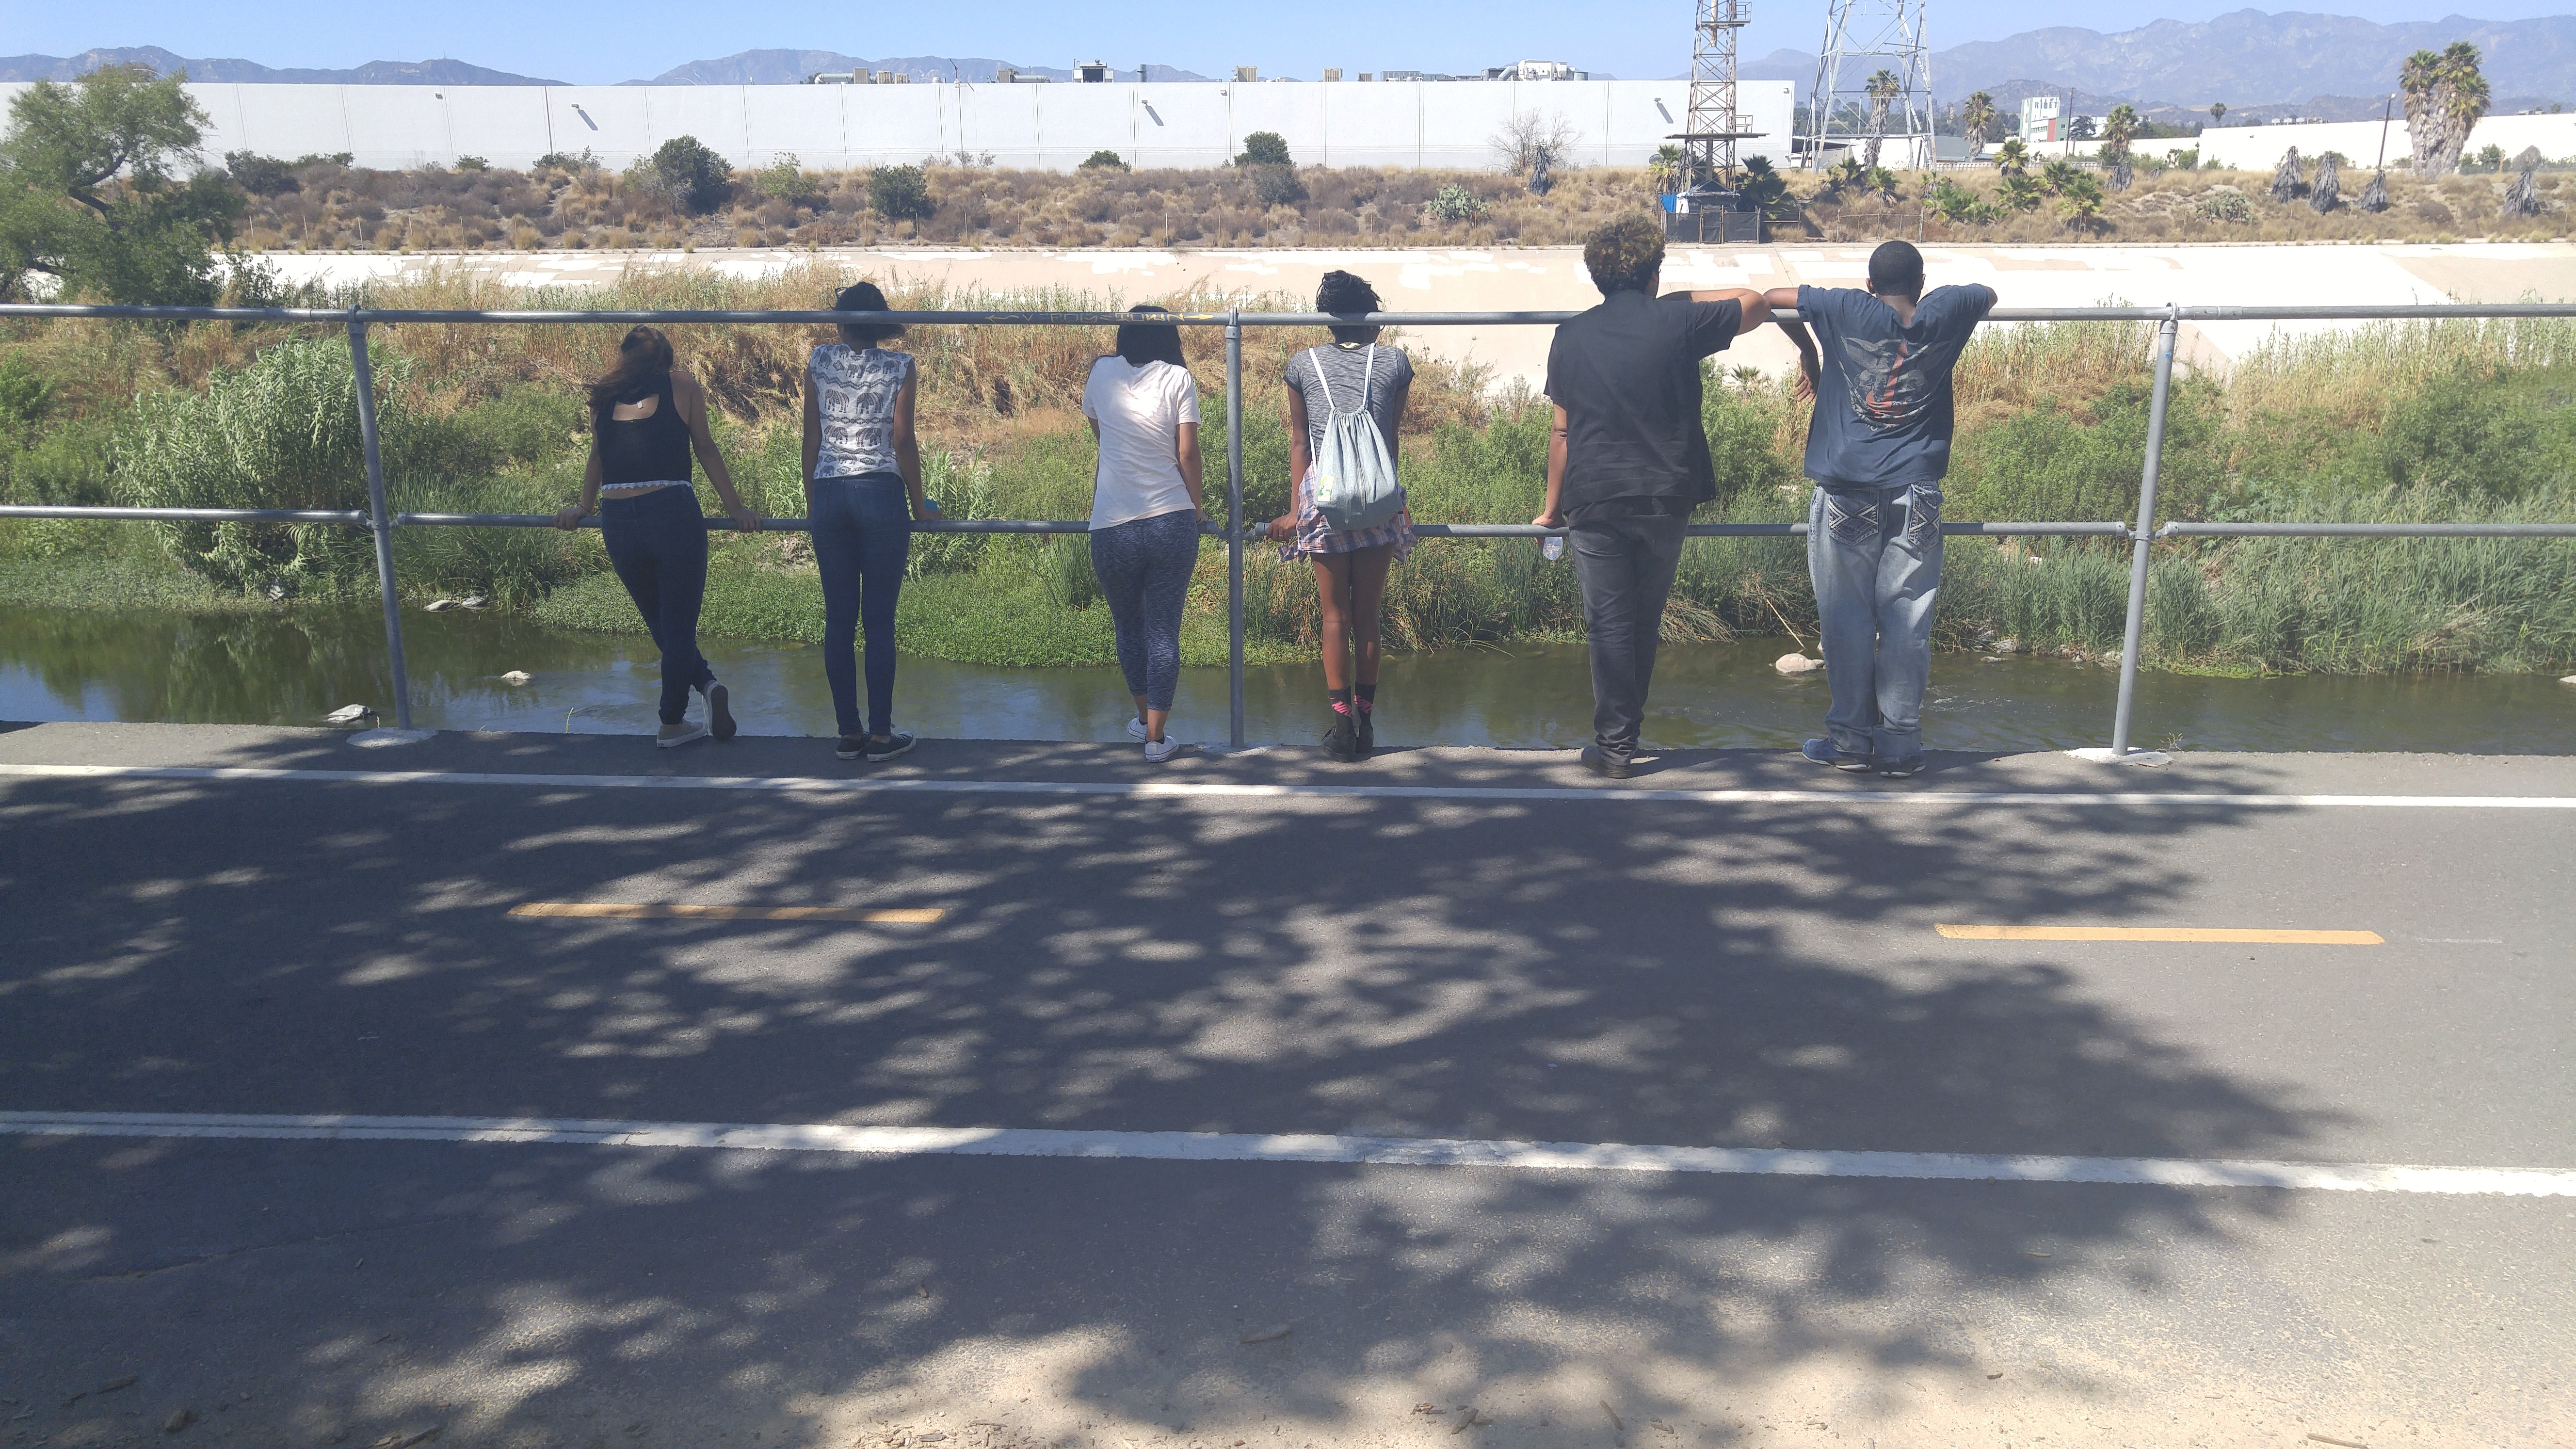 Participants observe waterfowl along the Los Angeles River. [Photo Credit: Yanin Kramsky]